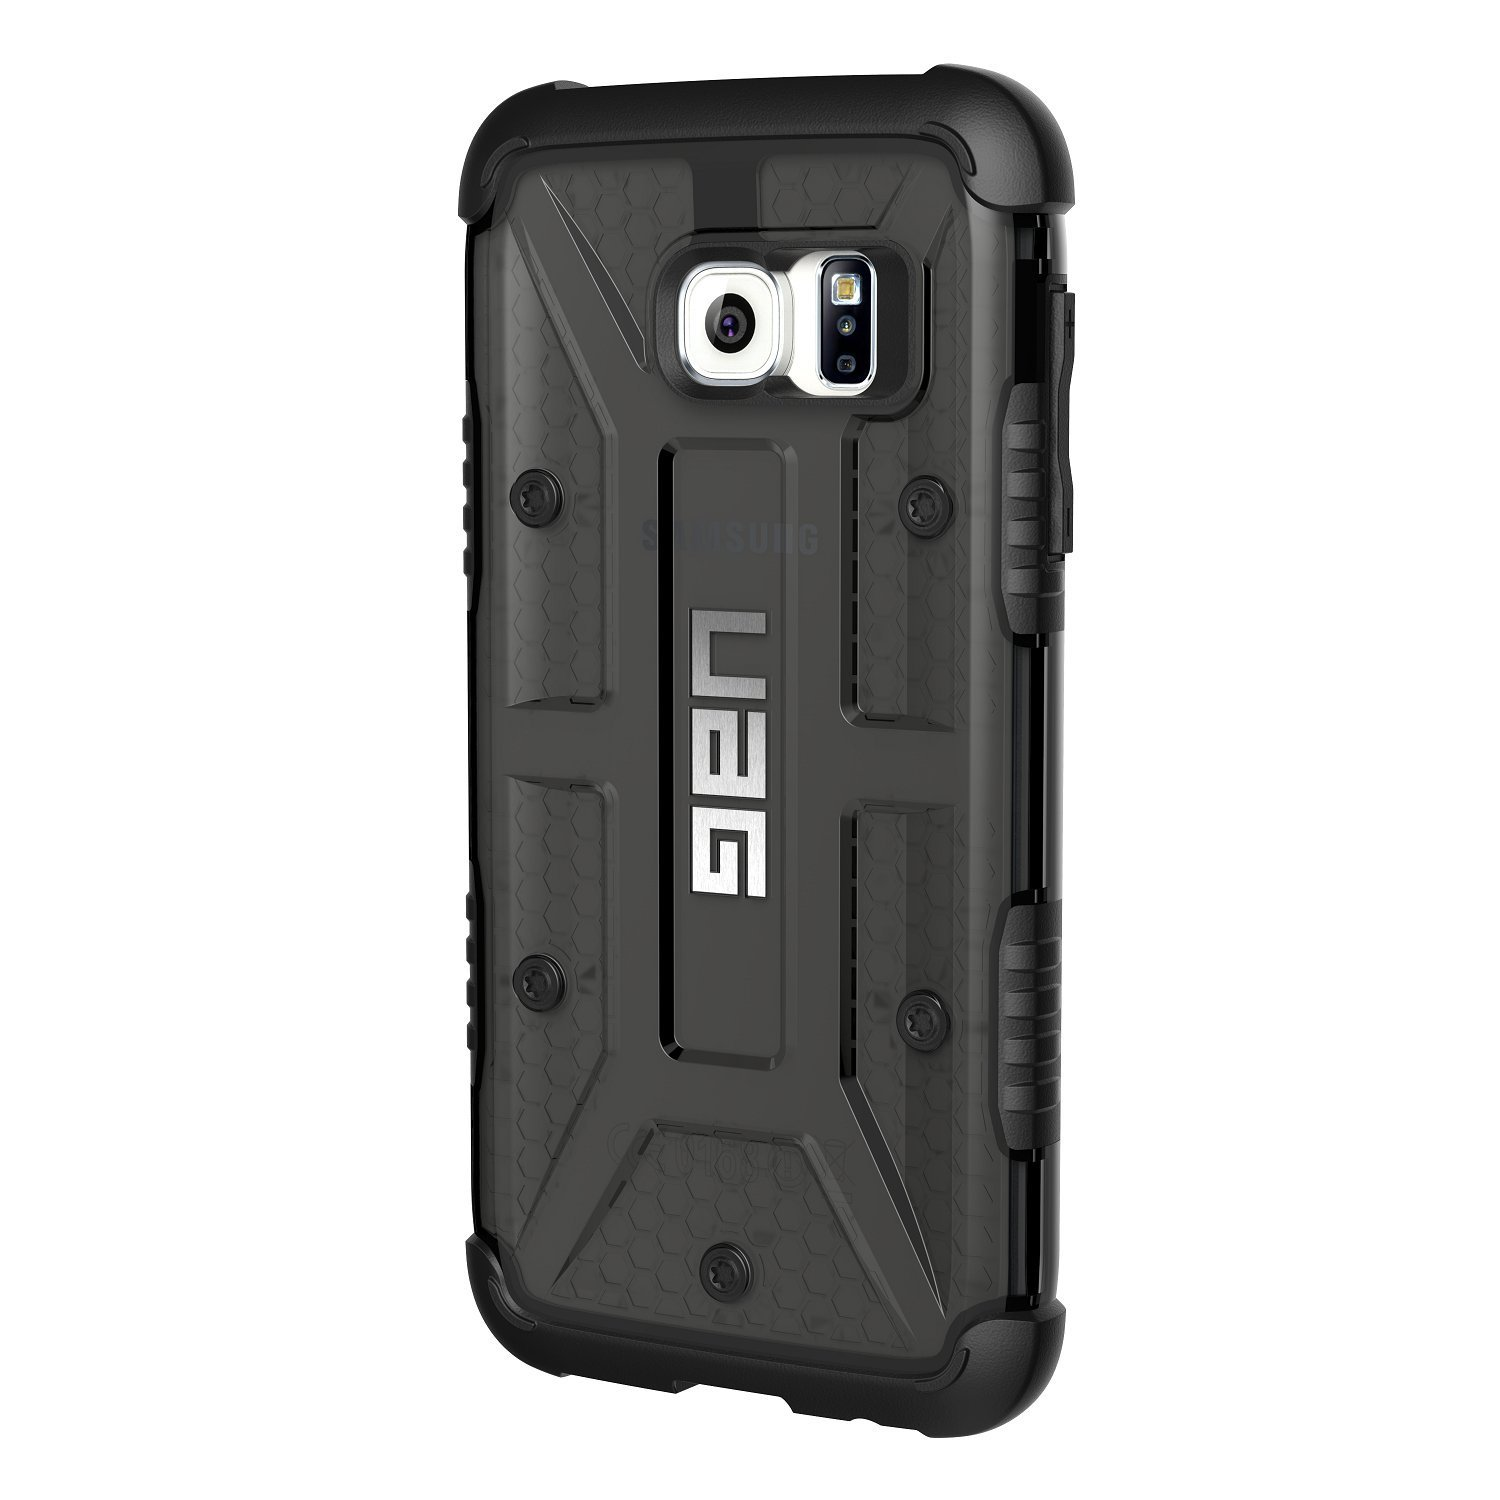 outlet store d84fd 8878d Best Samsung Galaxy S7 cases | Phandroid